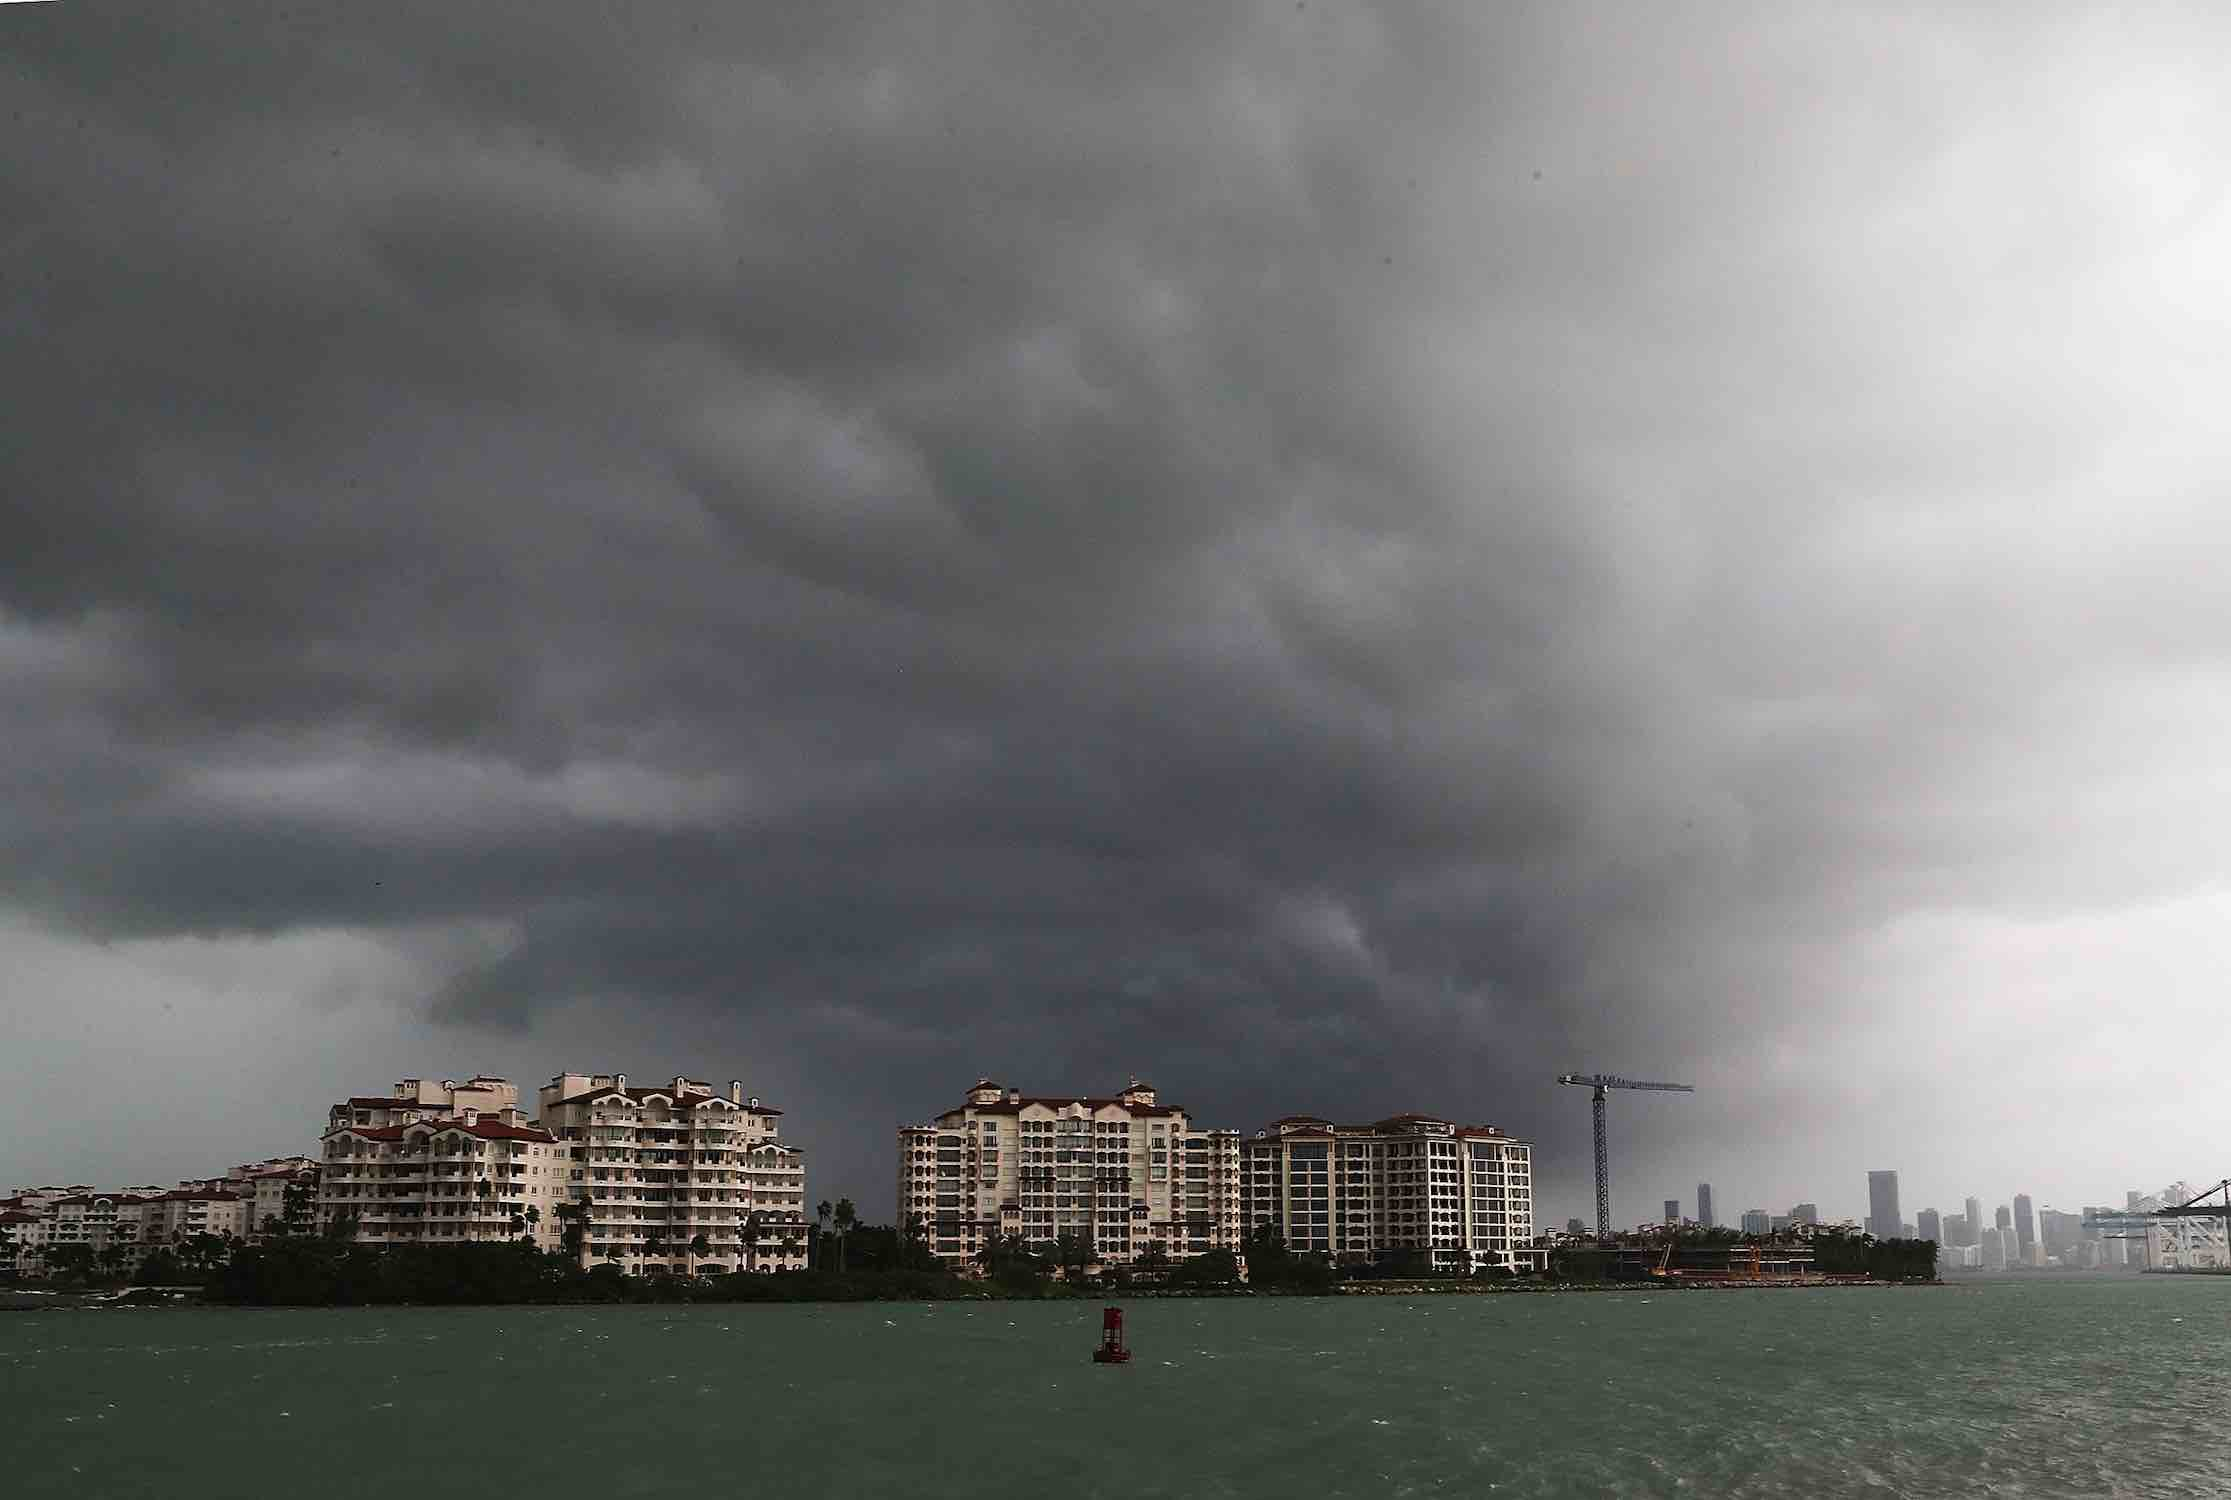 "<div class=""meta image-caption""><div class=""origin-logo origin-image kgo""><span>kgo</span></div><span class=""caption-text"">Storm clouds are seen over Fisher Island as Hurricane Irma approaches on September 9, 2017 in Miami Beach, Florida. (Joe Raedle/Getty)</span></div>"